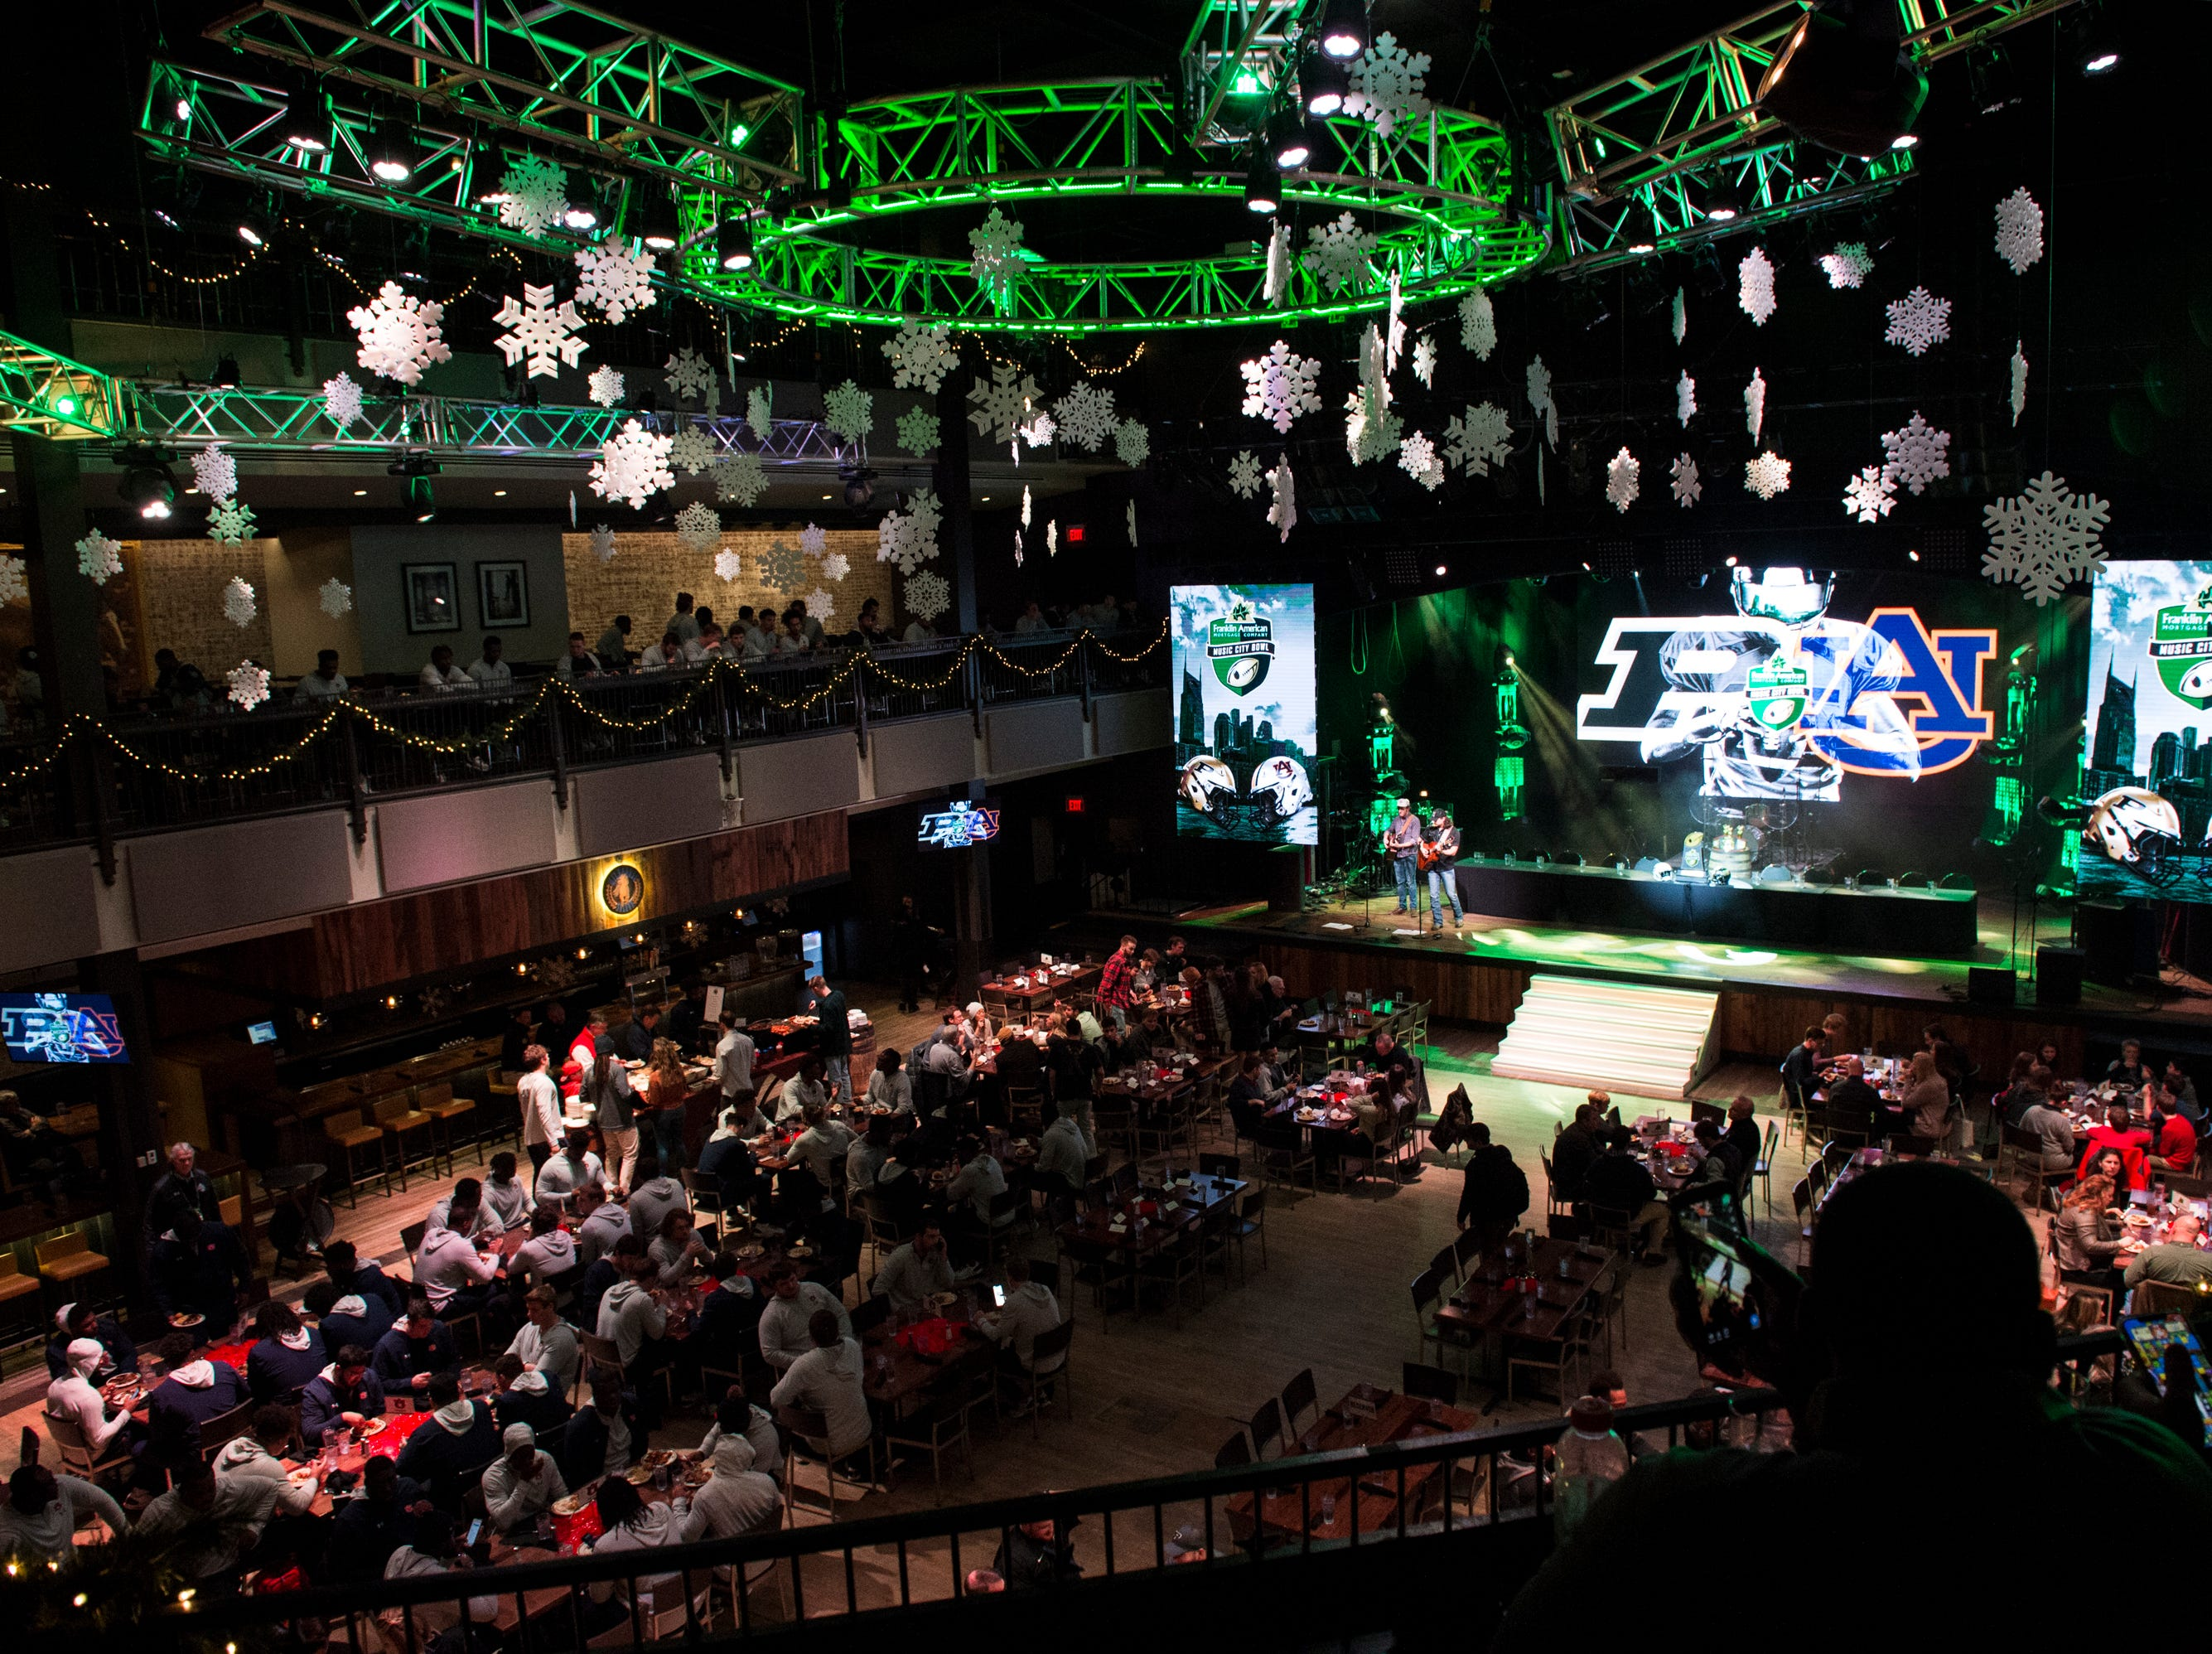 Teams eat and entertain together at Wild Horse Saloon in Nashville, Ten., on Wednesday, Dec. 26, 2018. Auburn takes on Purdue in the Music City Bowl Friday.